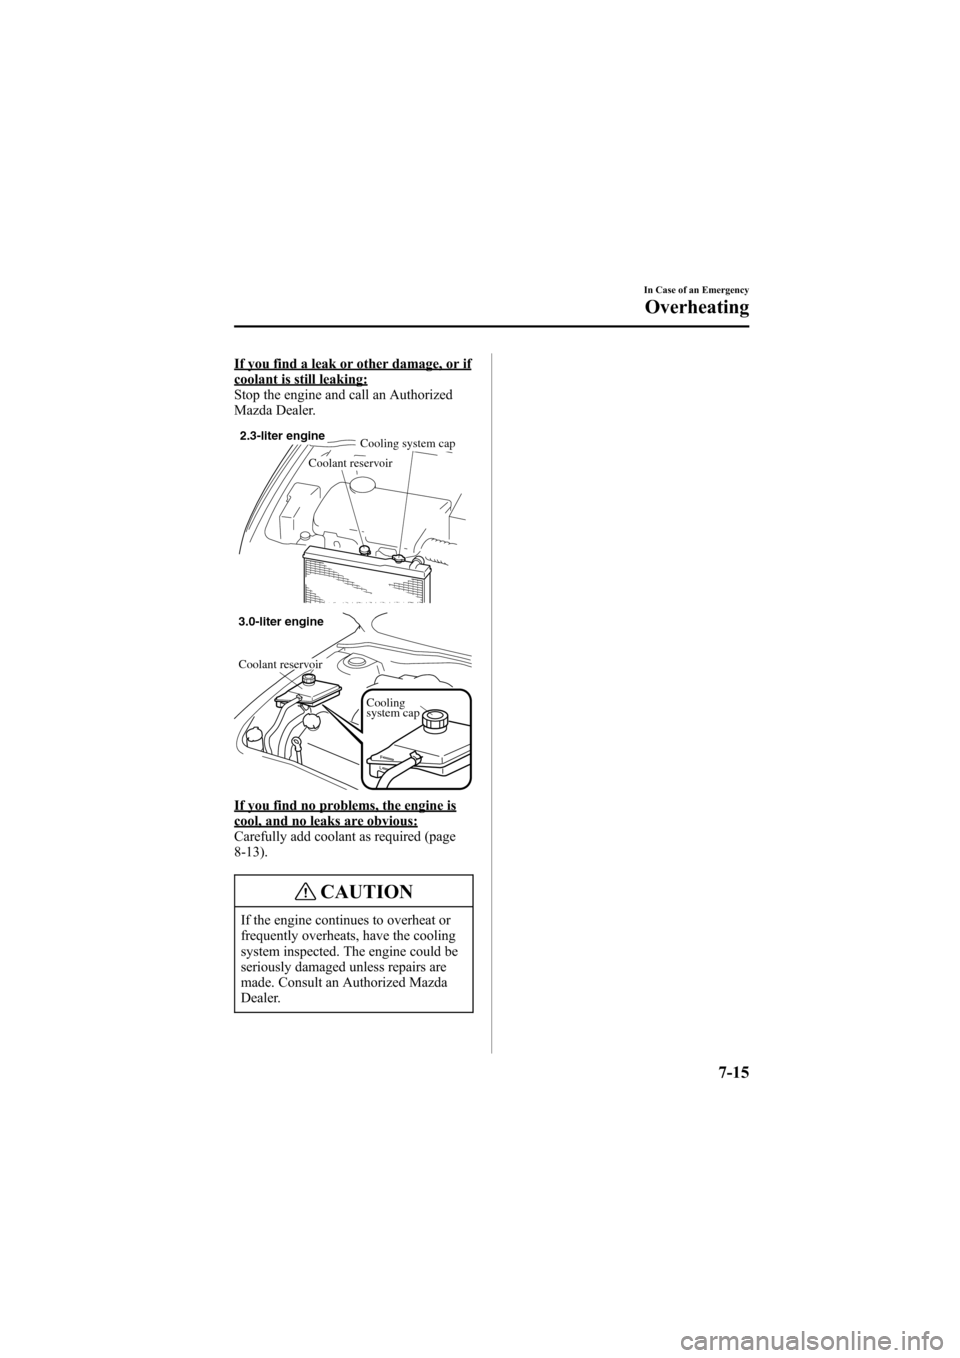 MAZDA MODEL 6 2005  Owners Manual (in English) Black plate (243,1) If you find a leak or other damage, or ifcoolant is still leaking: Stop the engine and call an Authorized Mazda Dealer. 2.3-liter engine Cooling system cap Coolant reservoir Coolin